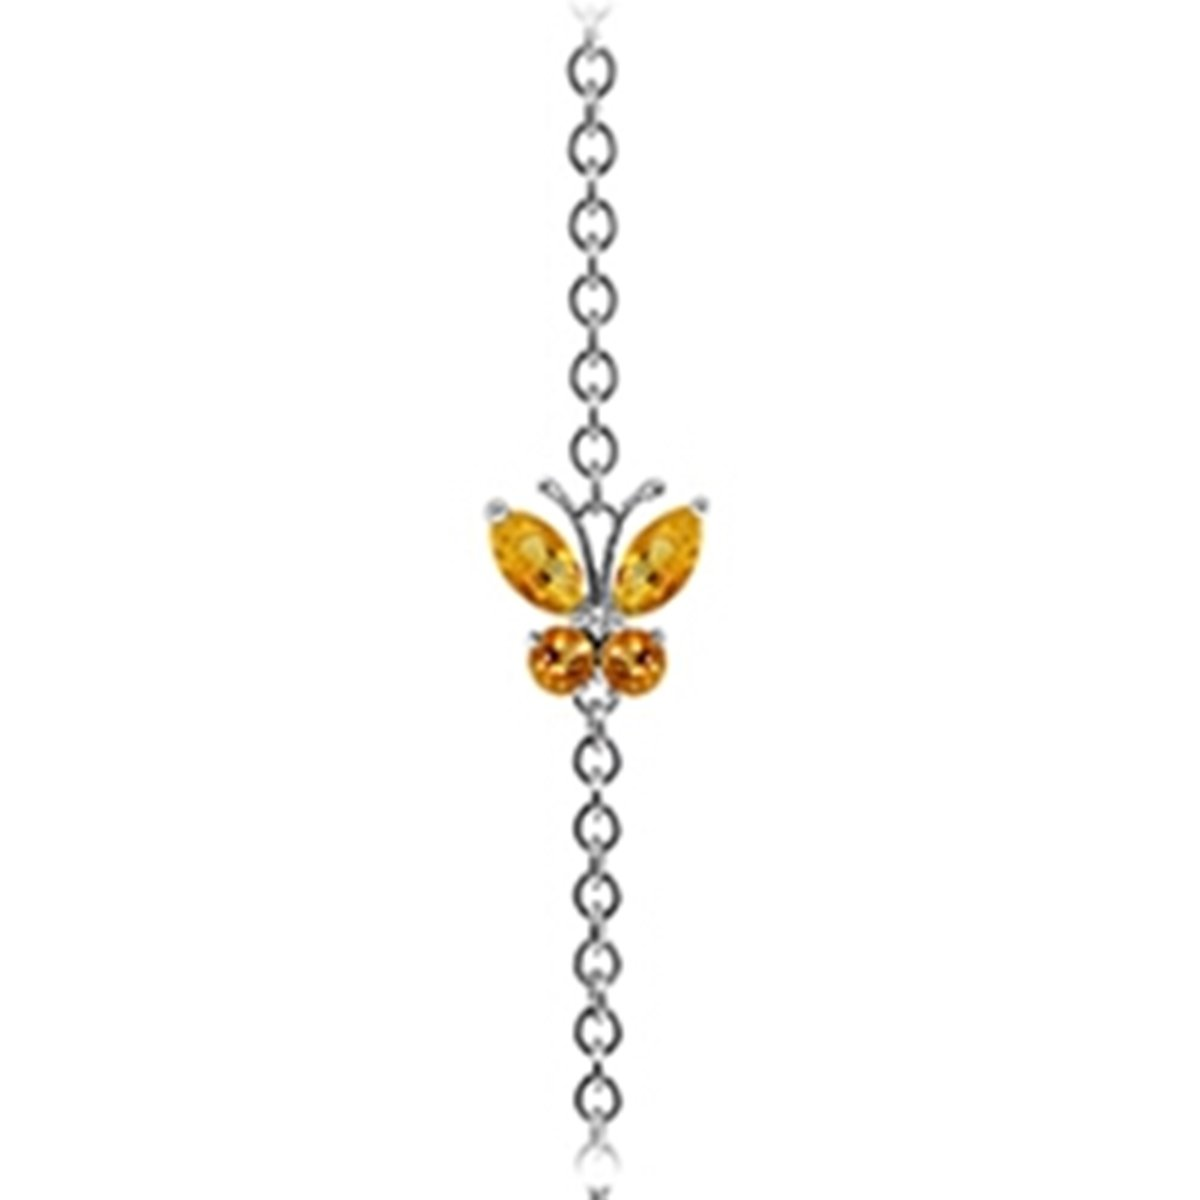 14K Solid White Gold Wings of a Citrine Butterfly Bracelet 5024-W